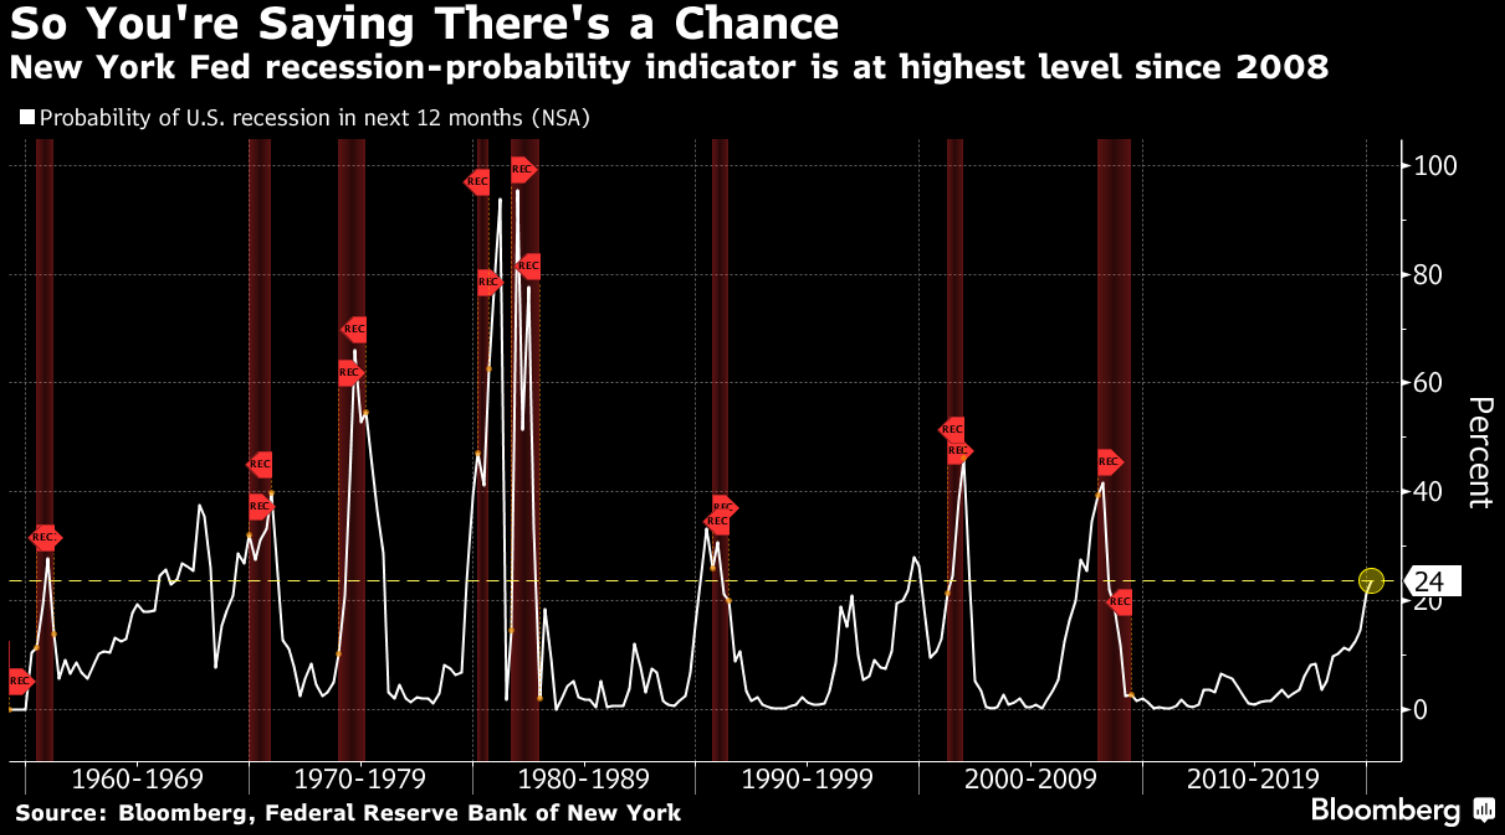 ny-fed-recession-index.png